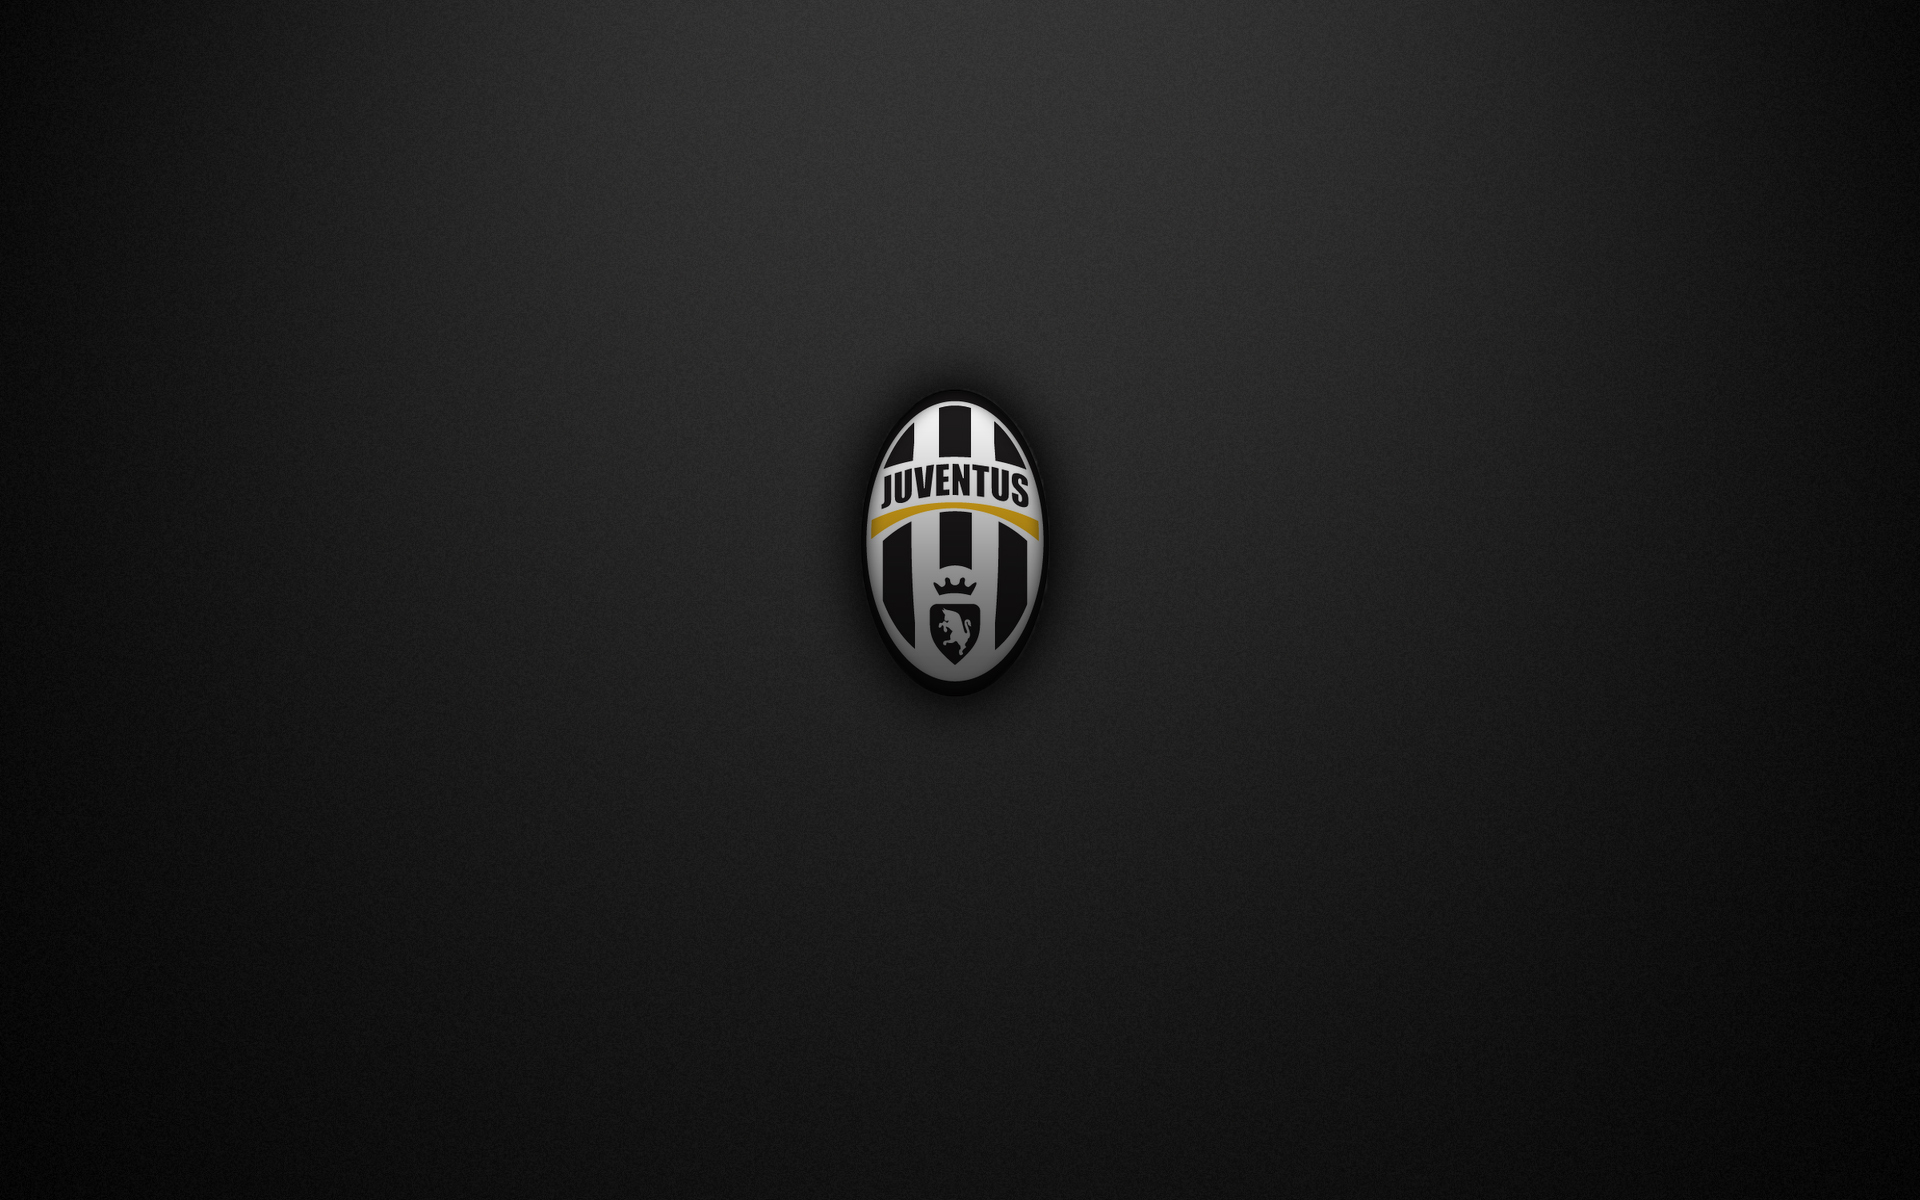 Juventus FC Club Wallpapers HD